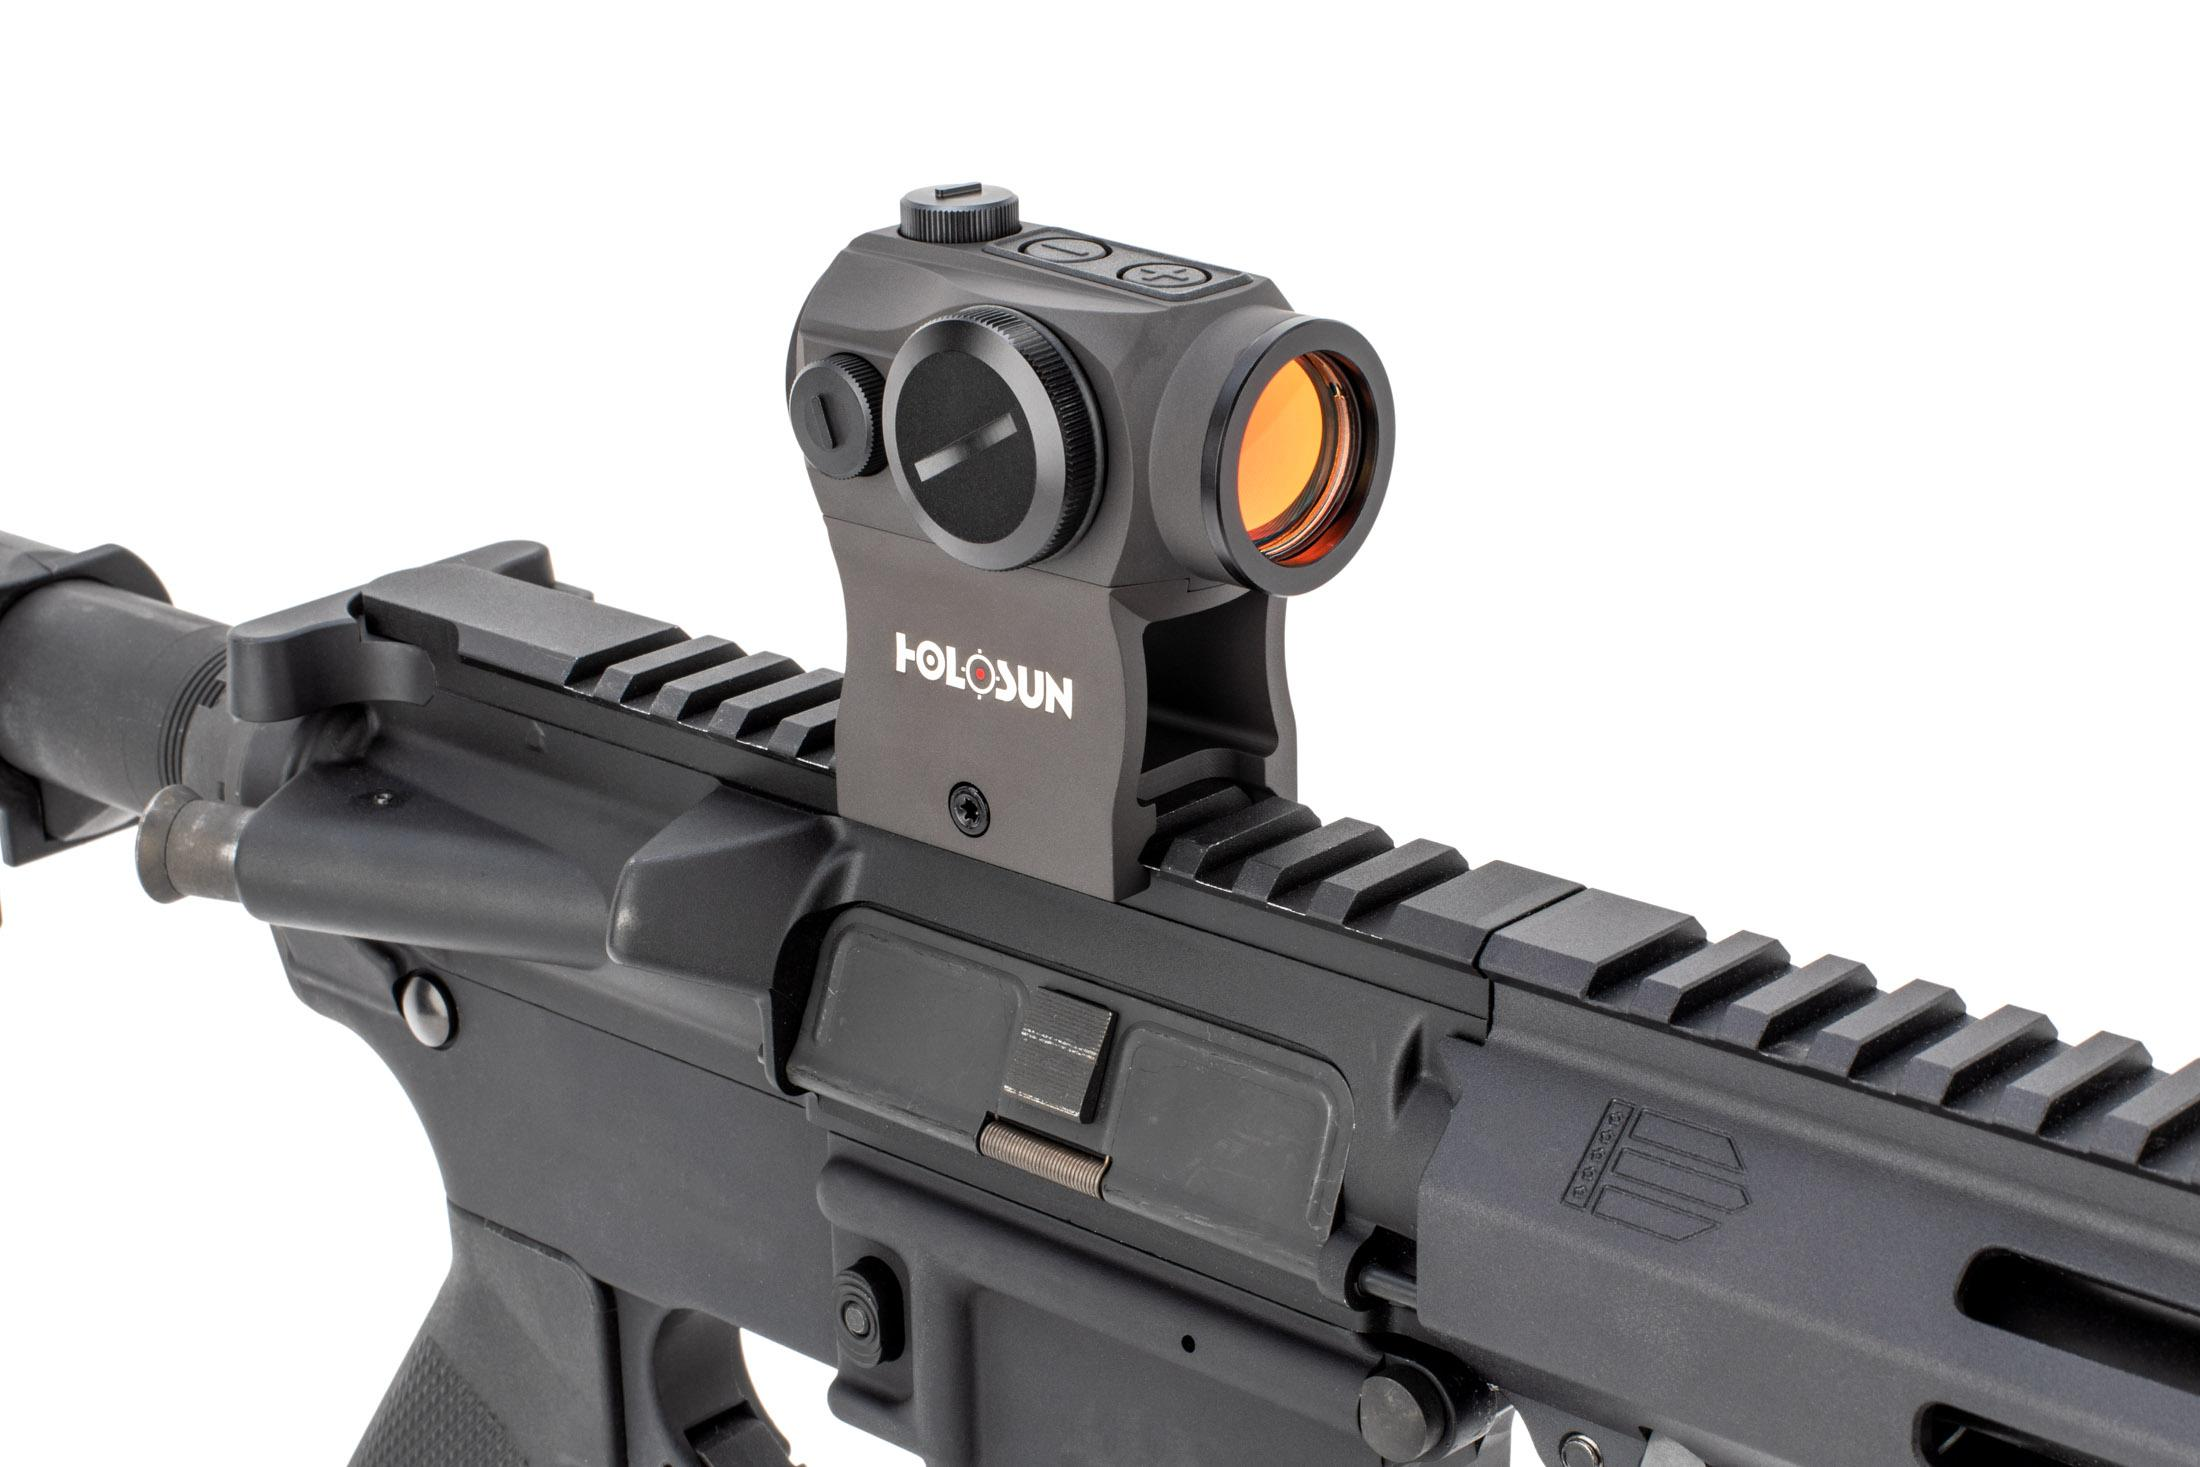 The holosun advanced micro dot sight has an illuminated cqb acss reticle